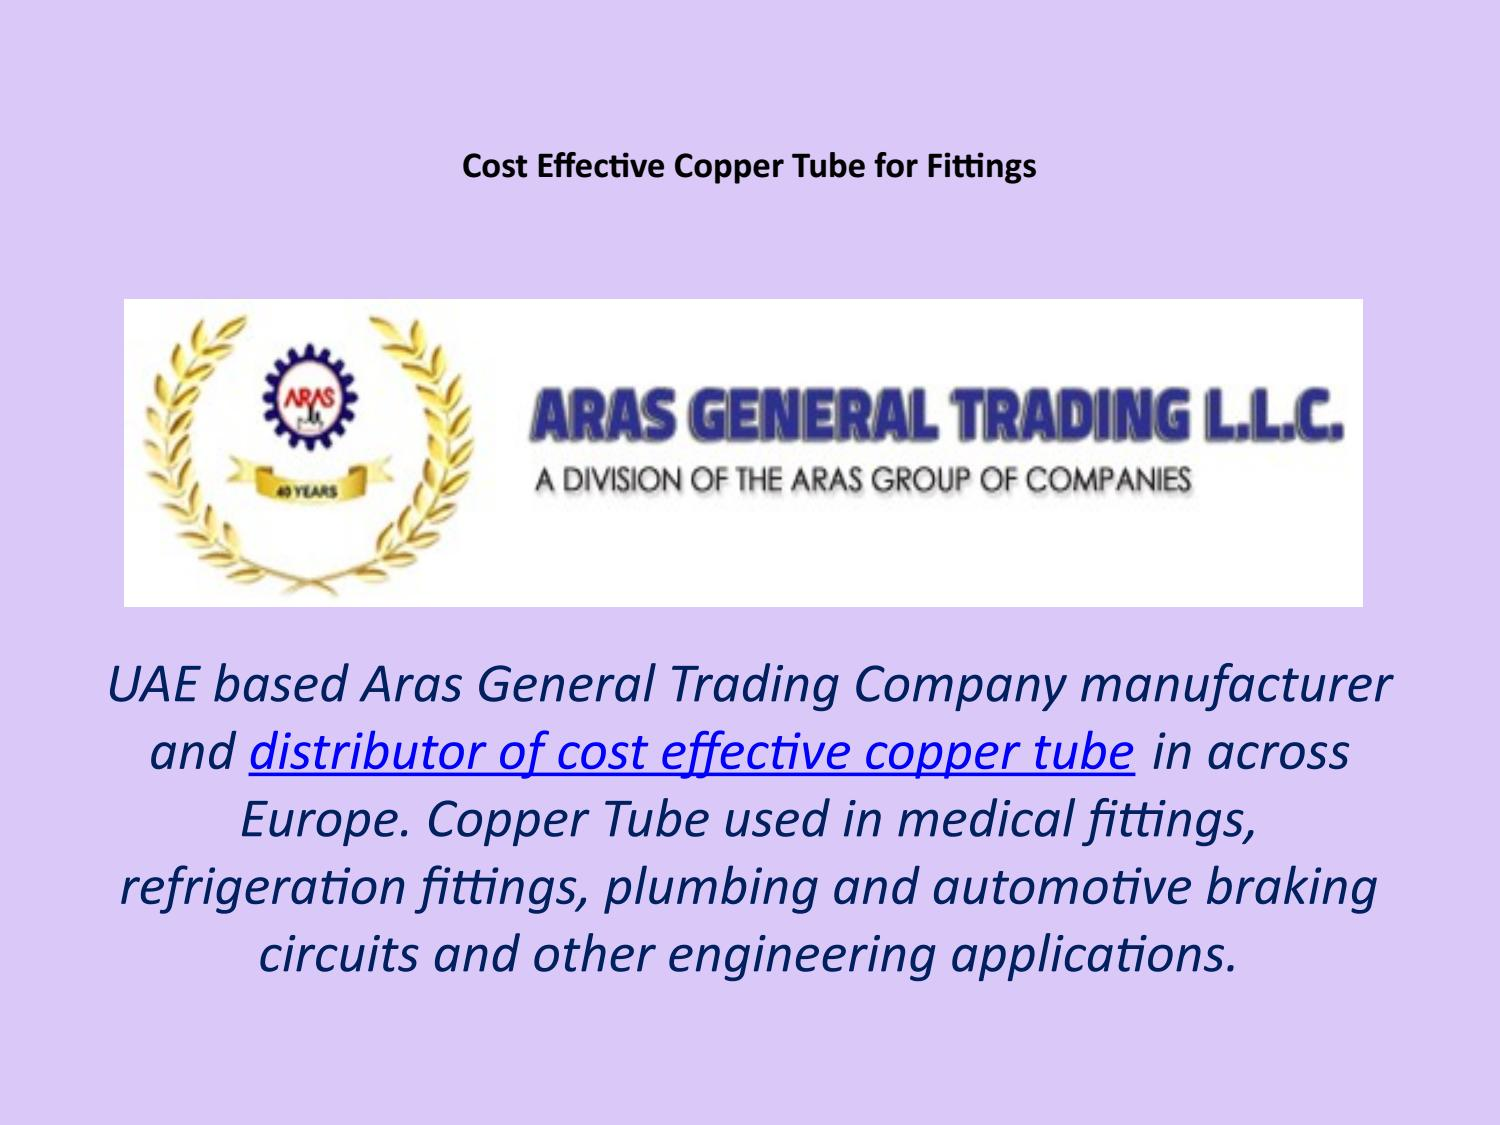 Cost effective copper tube for fittings by ARAS GENERAL